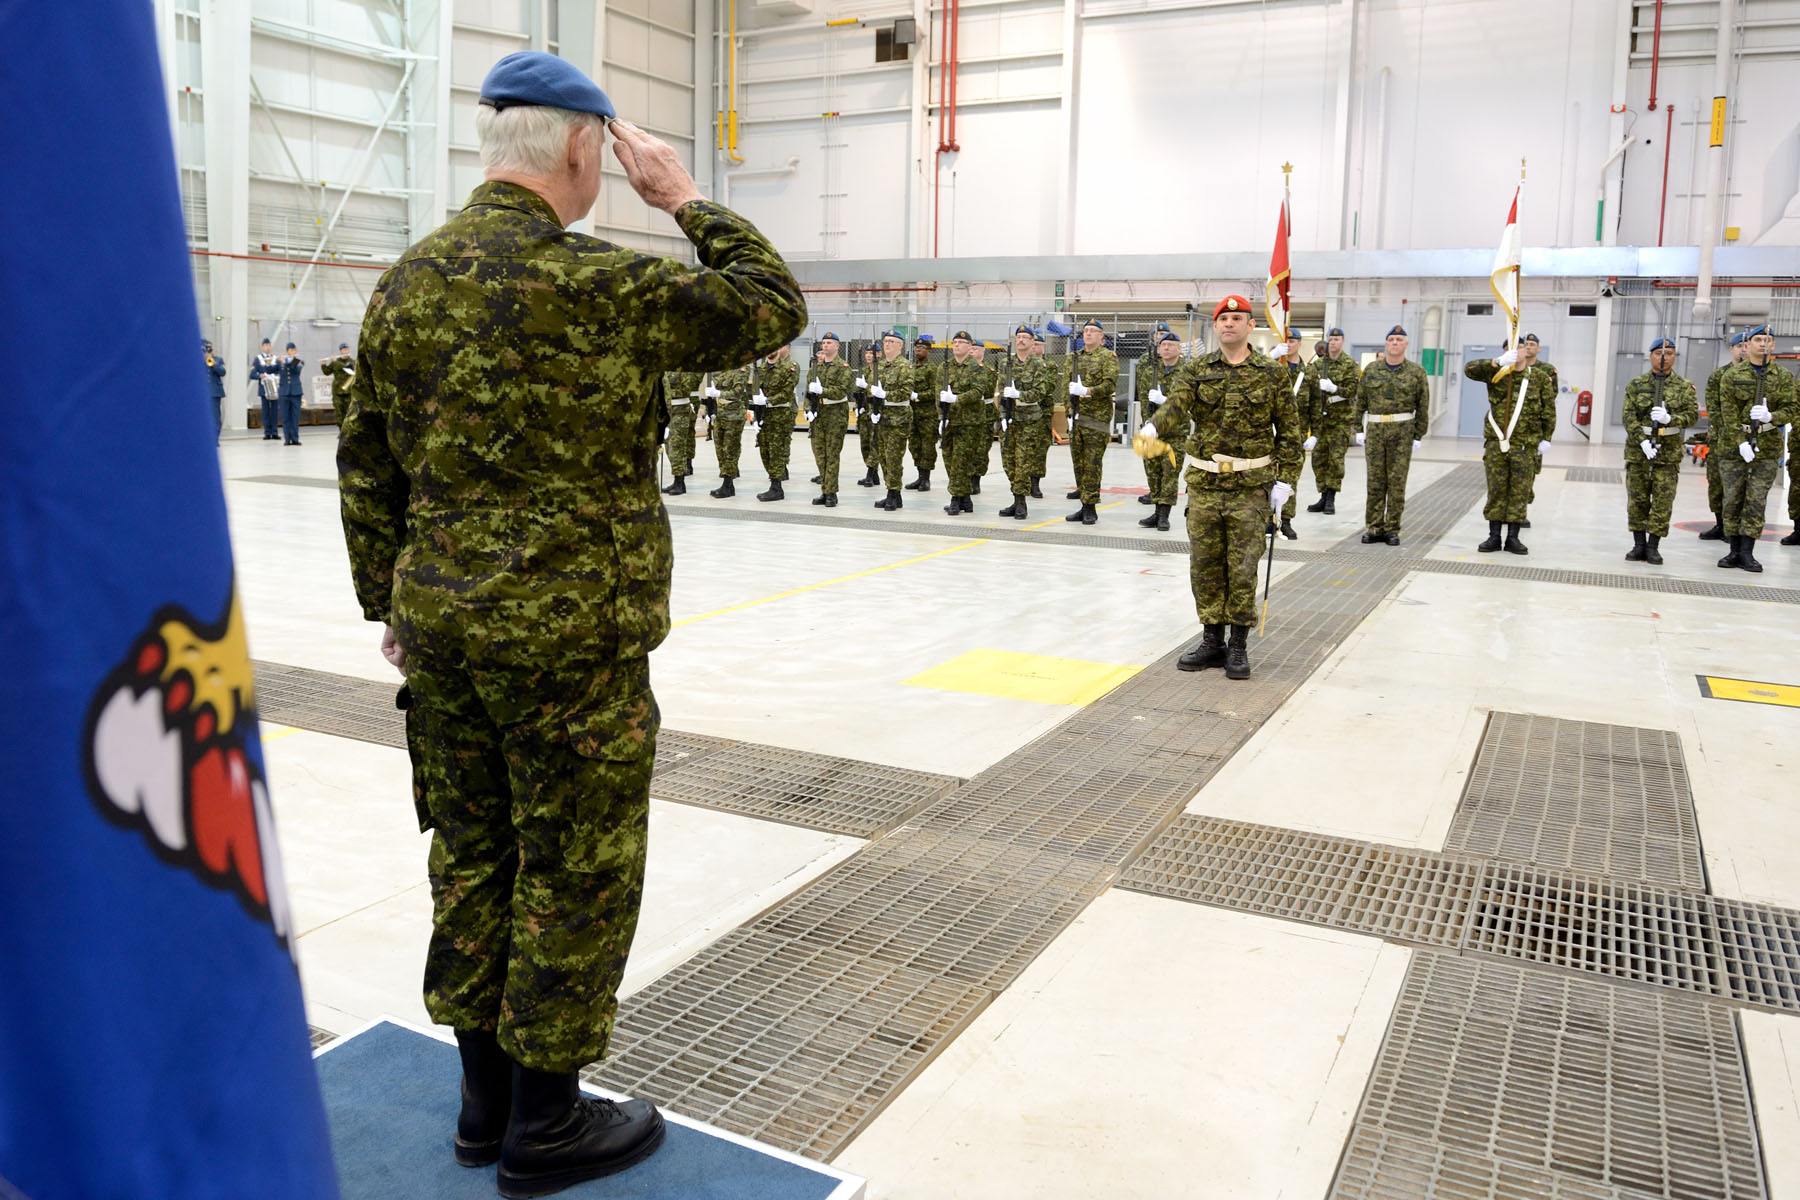 The Governor General inspected the guard of honour, which was comprised of 50 Canadian Armed Forces members from 4 Wing Cold Lake.